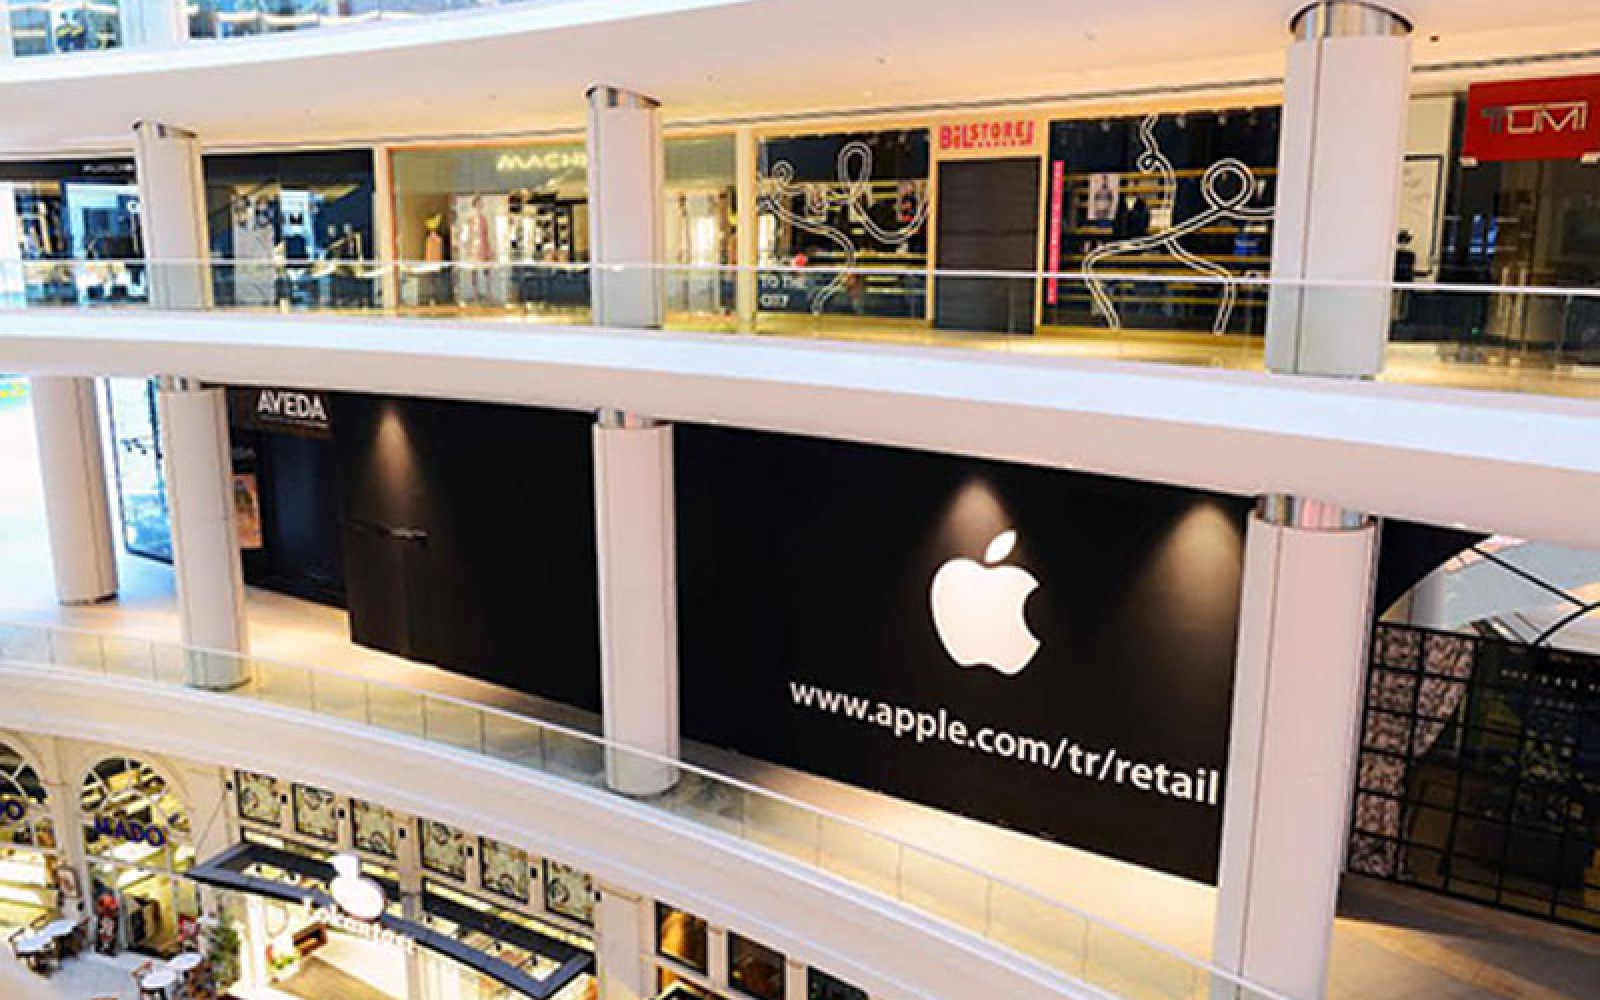 Second Apple Store in Turkey appears to be nearing completion